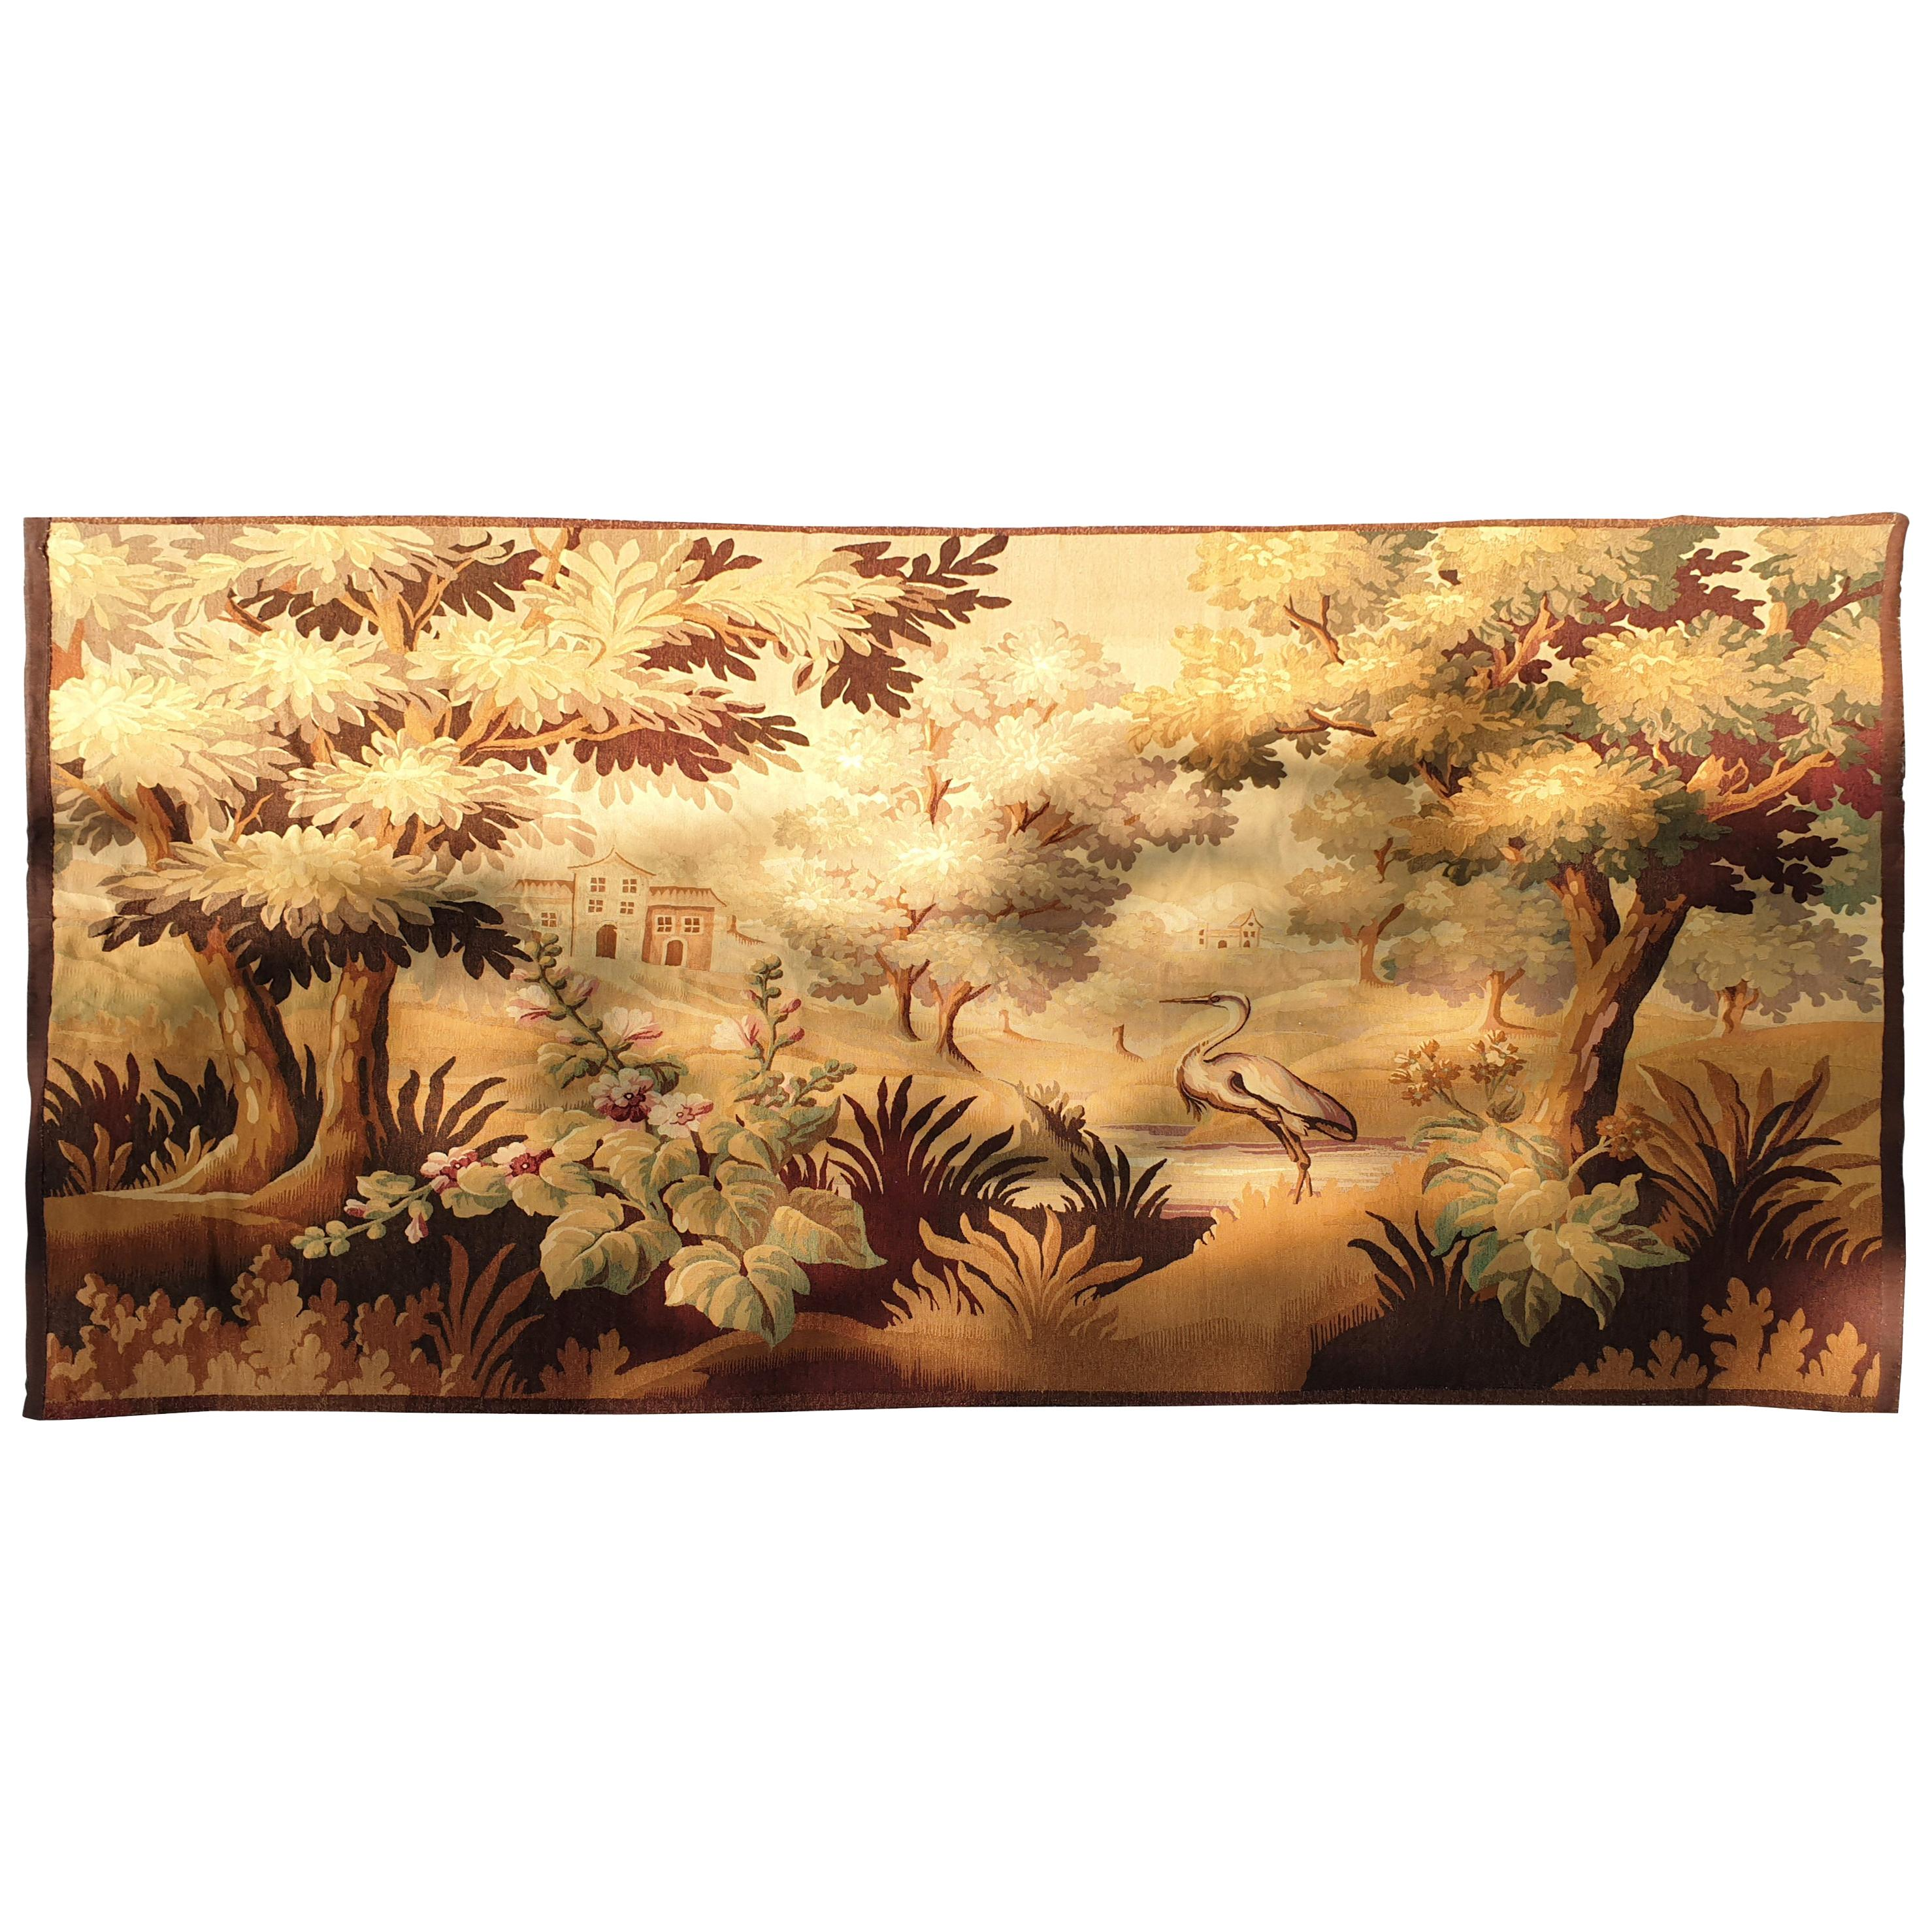 890 - 19th Century Tapestry Aubusson